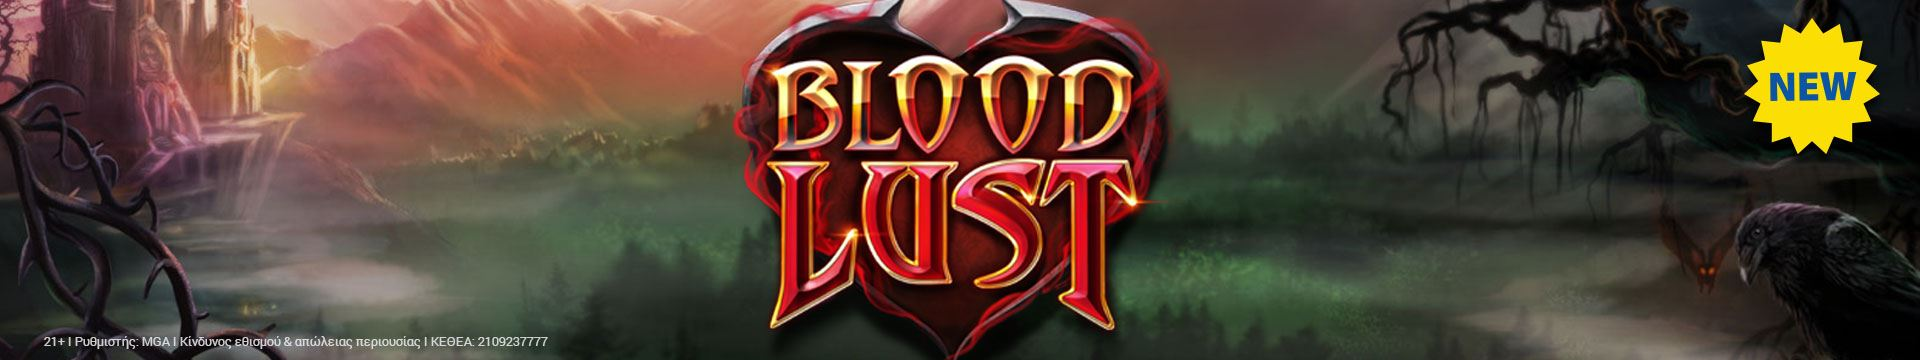 Blood_Lust